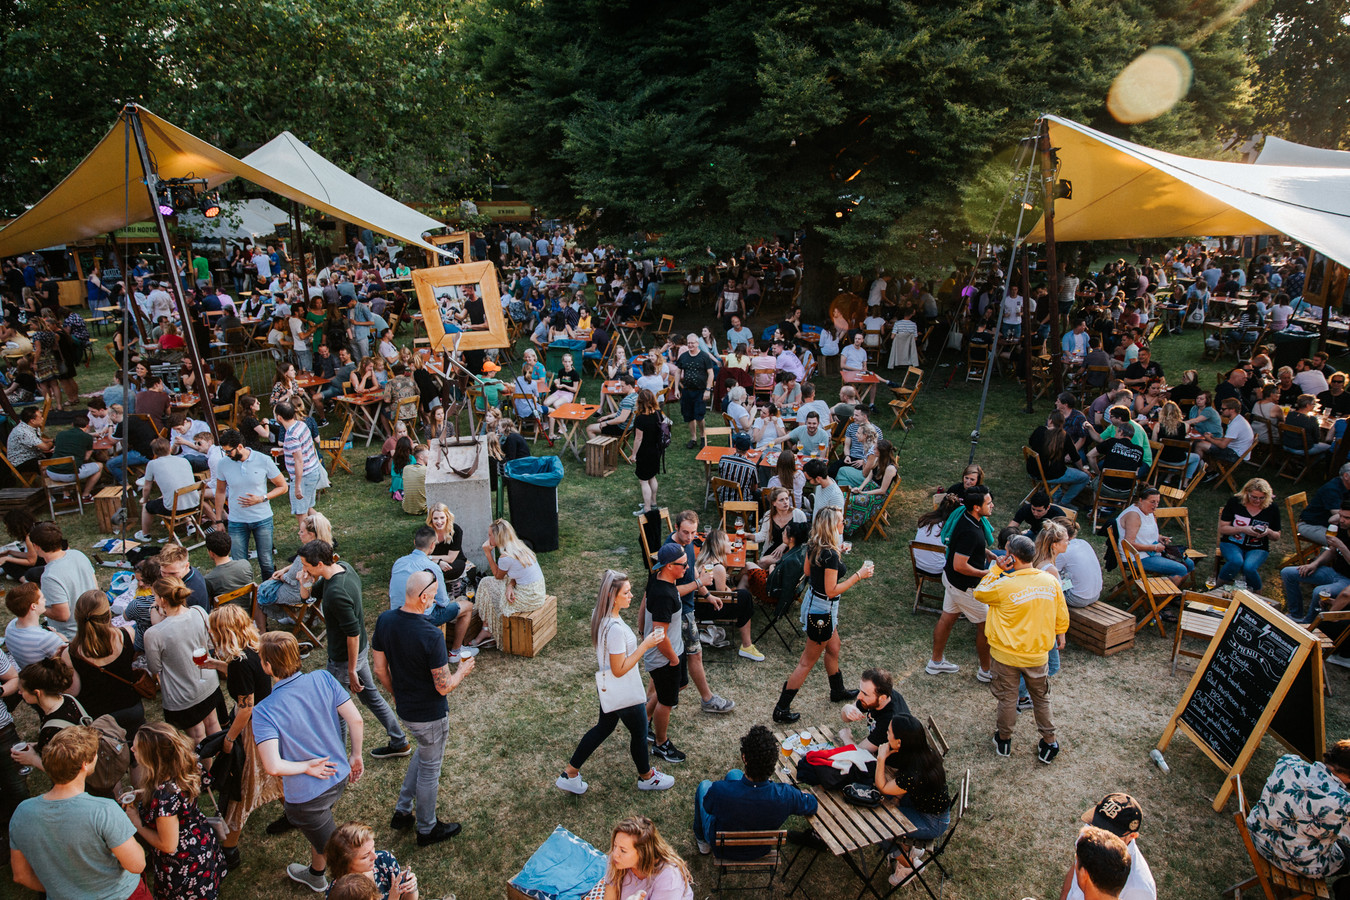 Bierfestival Mout in het Julianapark in Nijmegen in 2019.